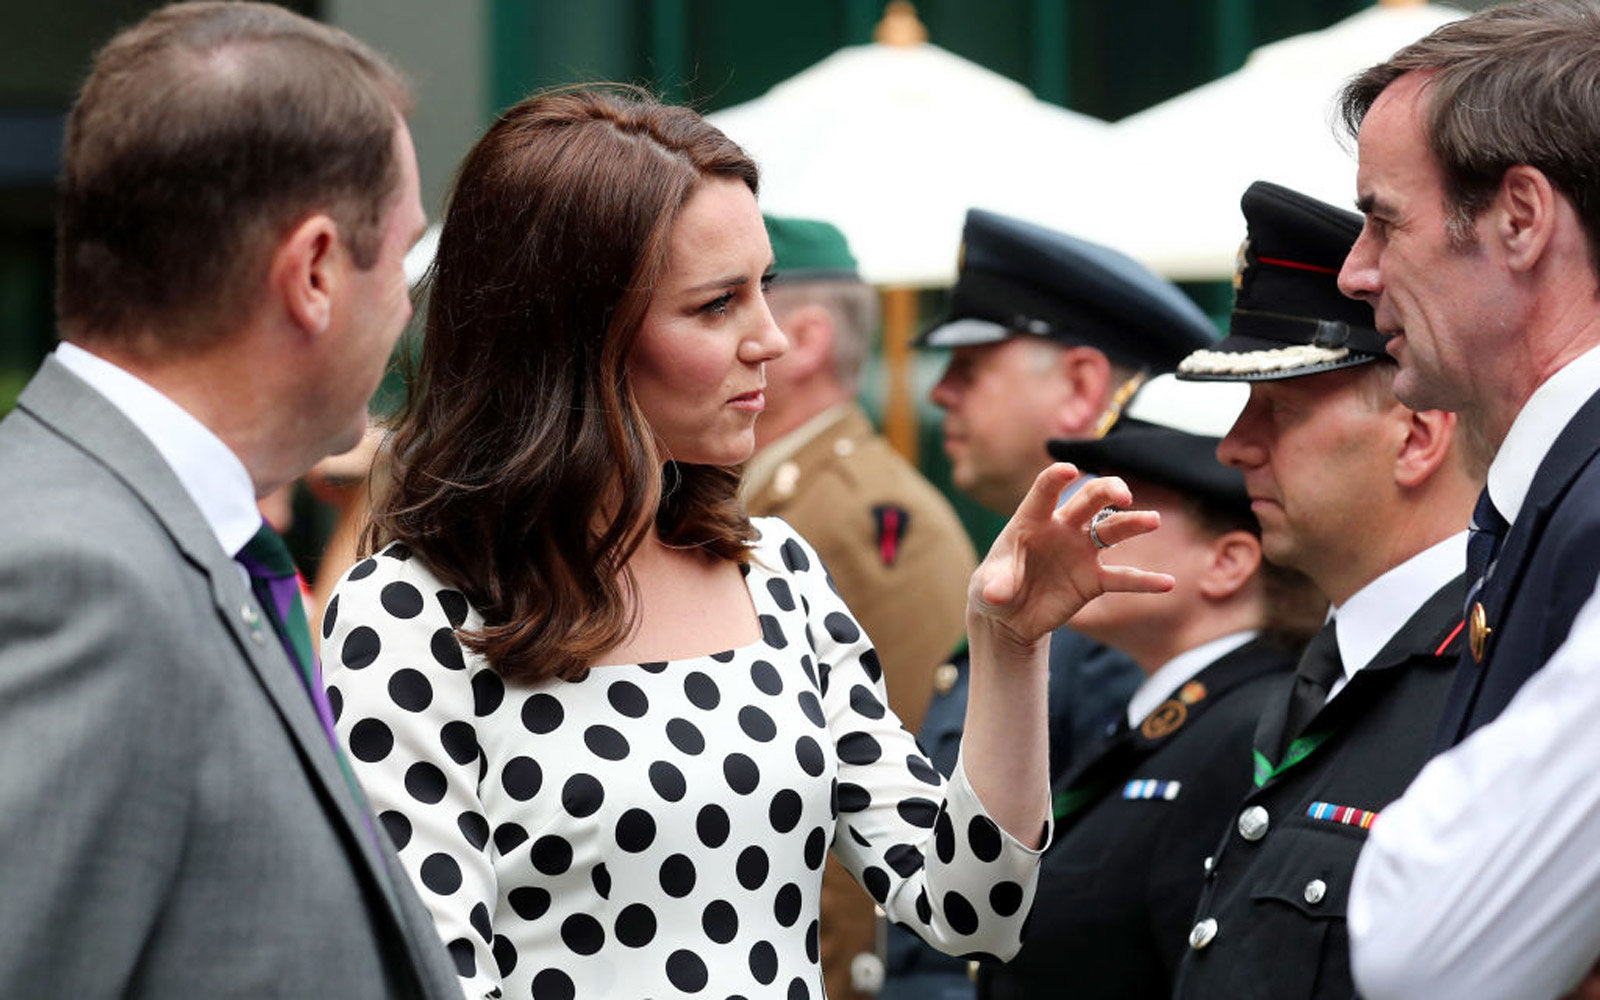 LONDON, UNITED KINGDOM - JULY 3:  Catherine, Duchess of Cambridge as she meets servicemen and women on day one of the Wimbledon Championships at The All England Lawn Tennis and Croquet Club, in Wimbledon on July 3, 2017 in London, England.  (Photo by Gare